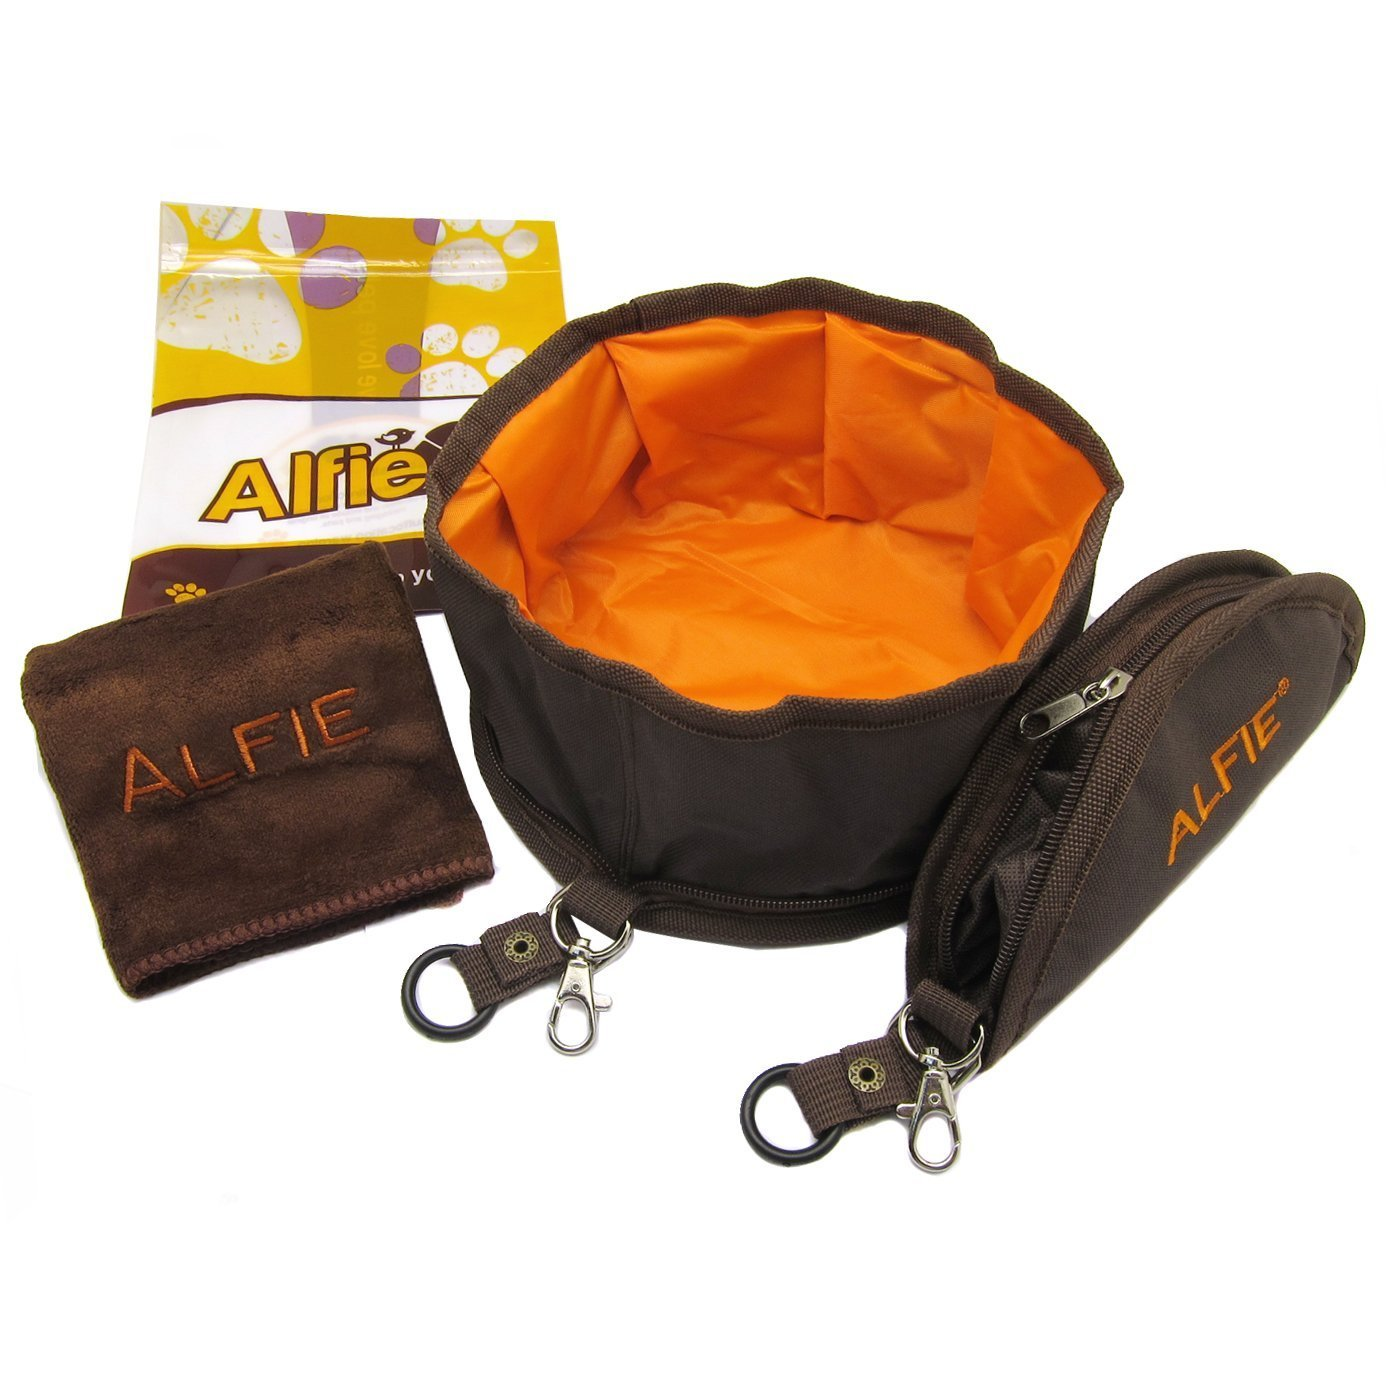 (Set of 2 with Microfiber Washcloth) Alfie Pet by Petoga Couture Fabric Expandable Collapsible Travel Bowl (for food and water) Colour  Brown